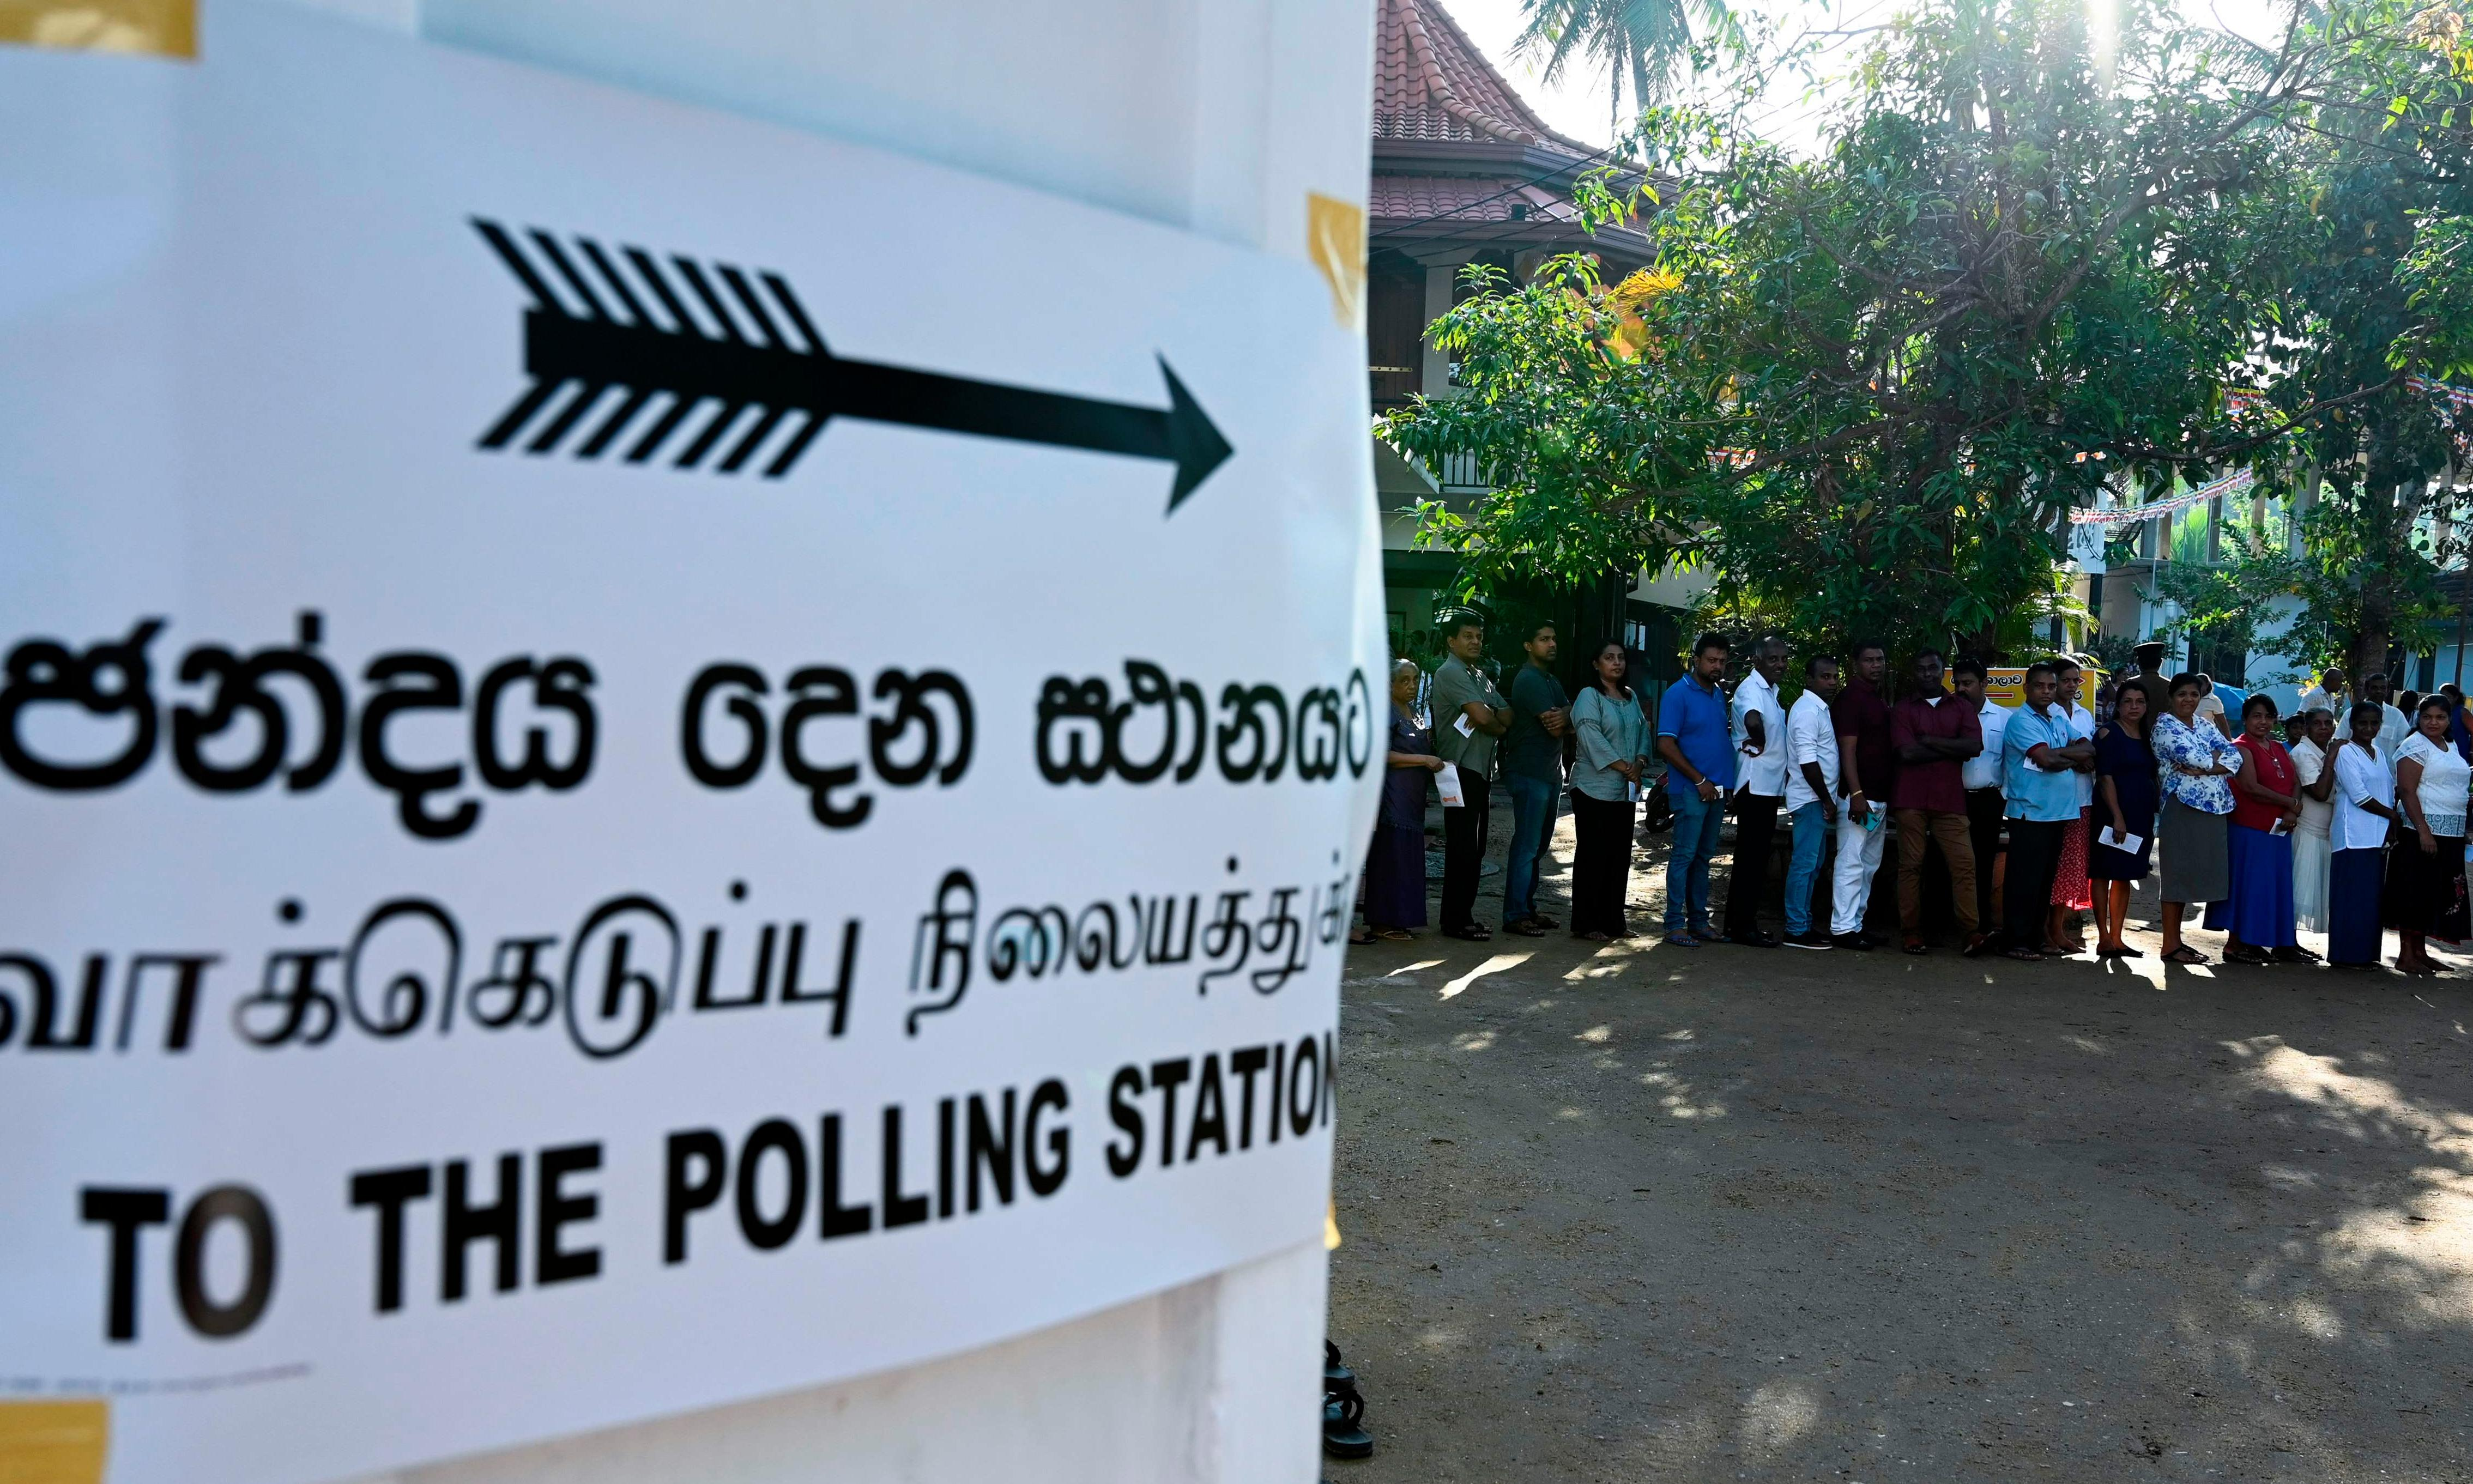 Sri Lanka presidential election: buses carrying Muslim voters attacked